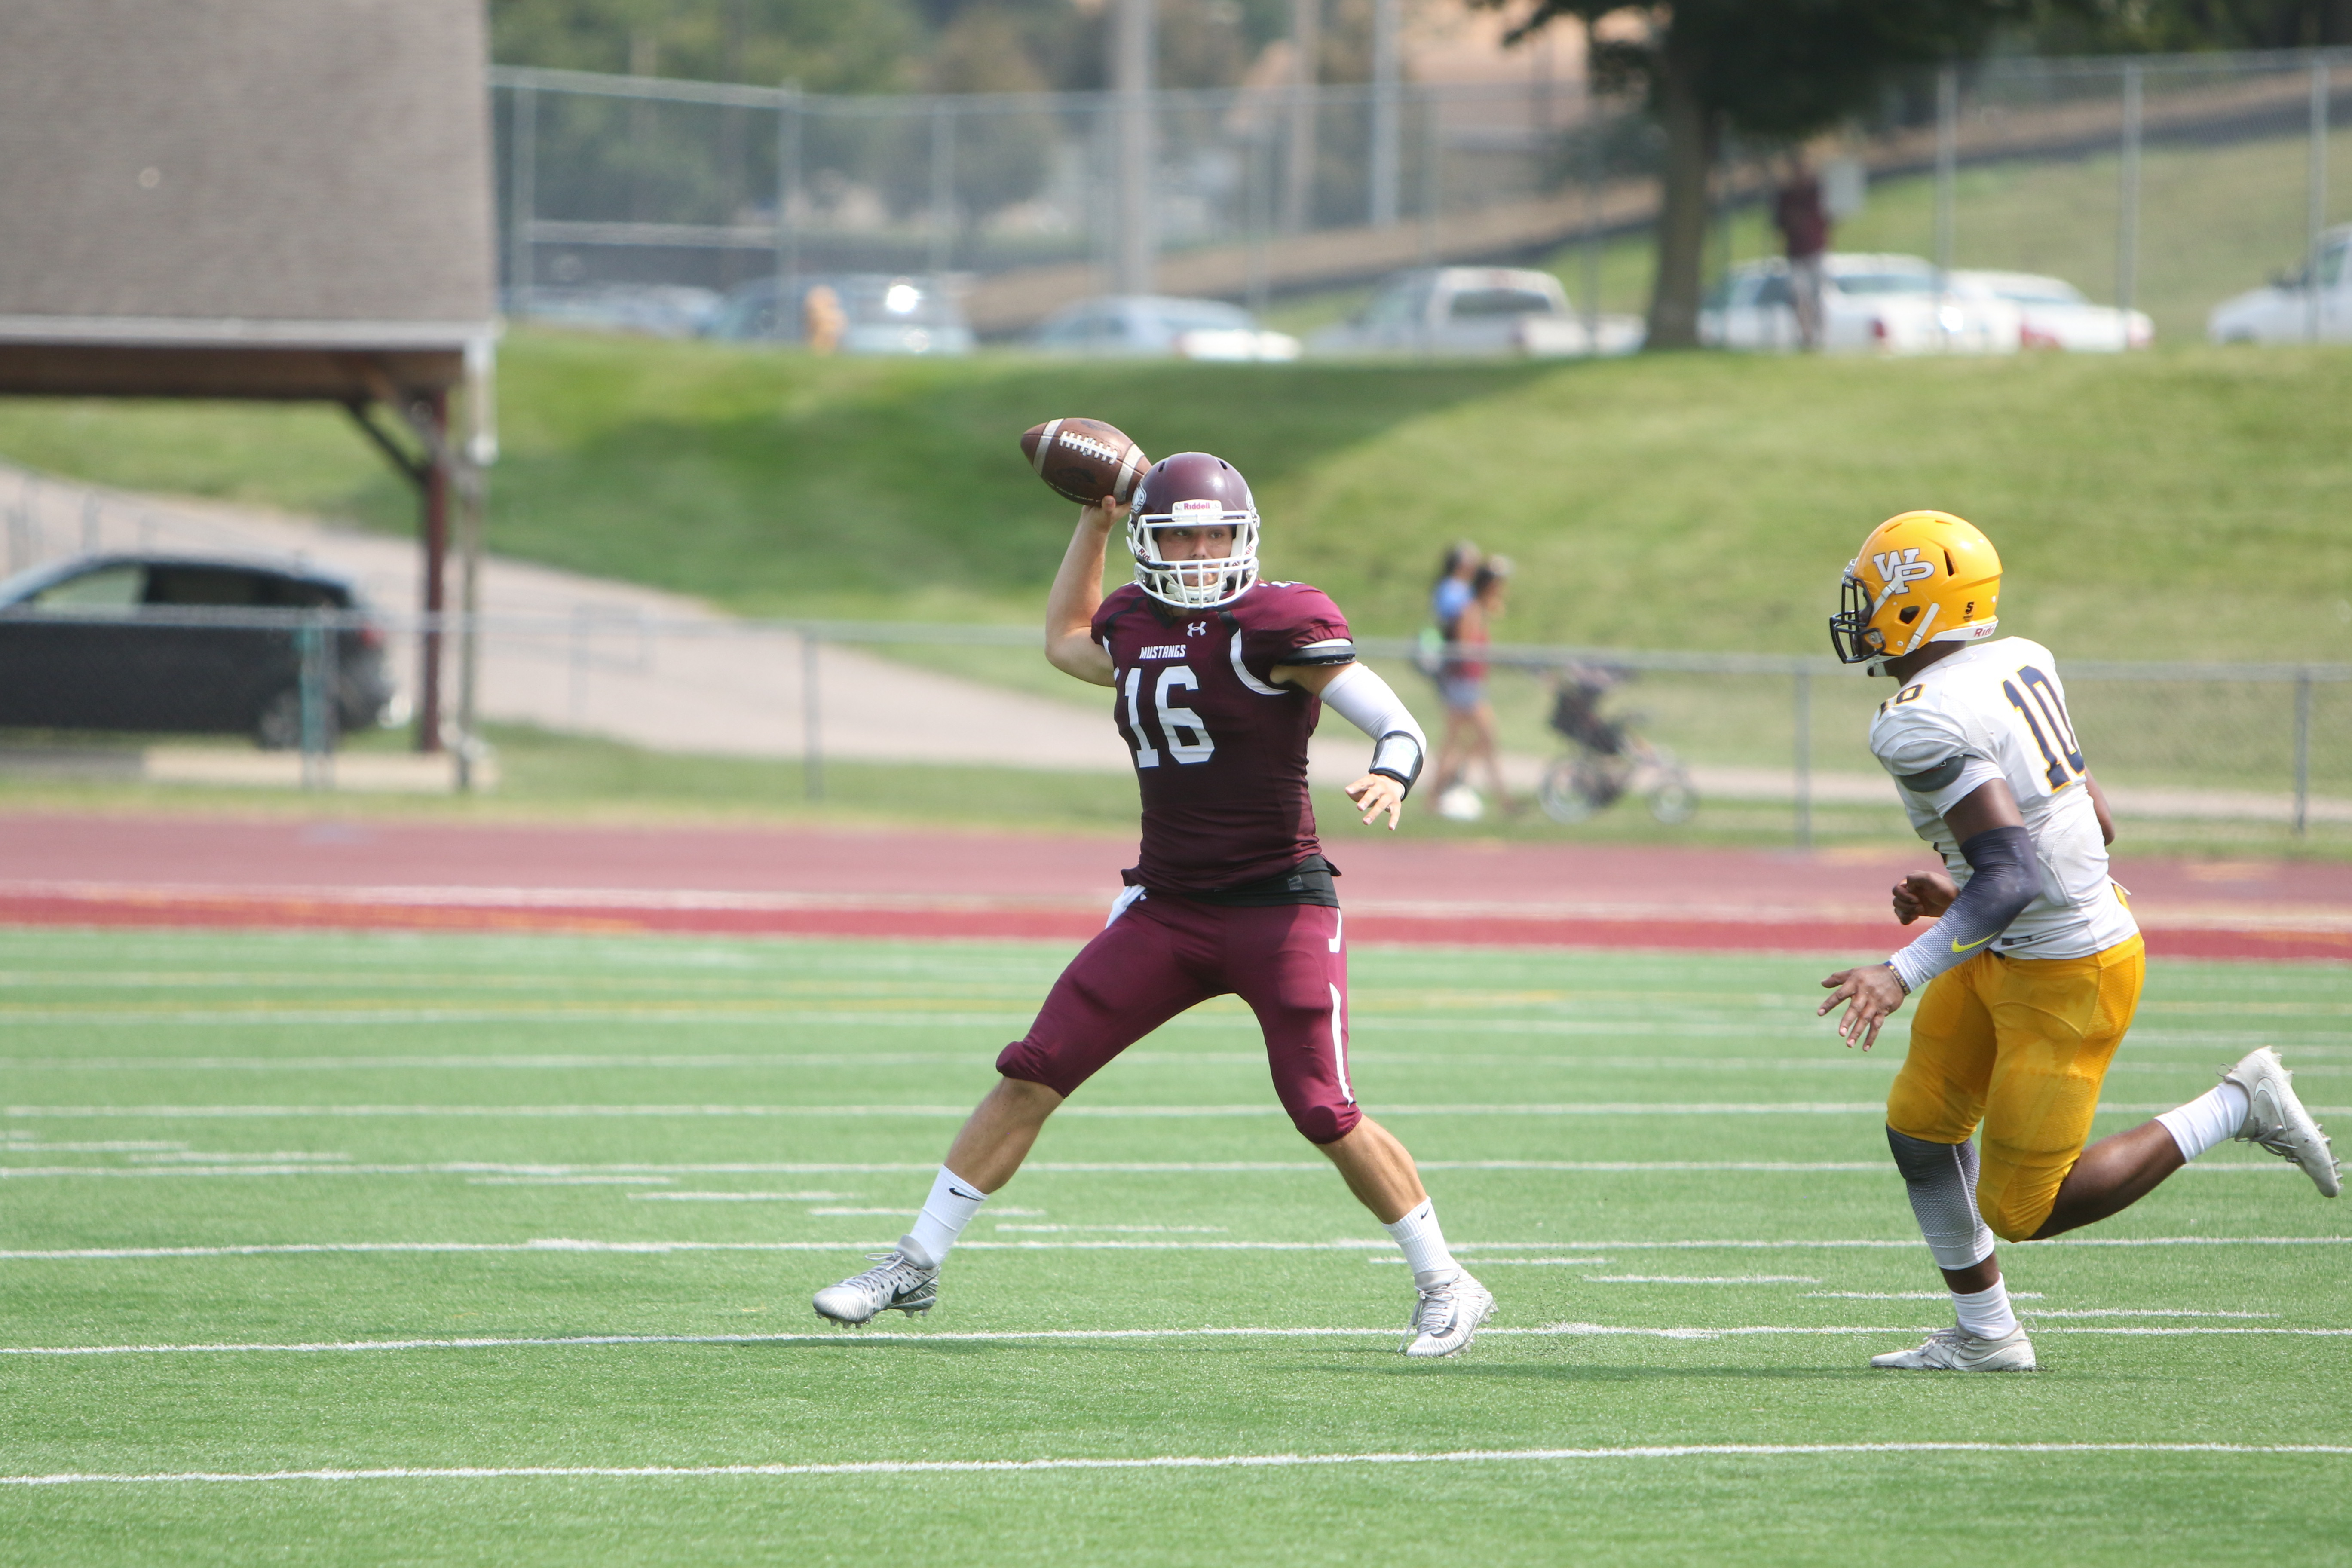 Morningside (Iowa) QB Trent Solsma named National Player of the Year